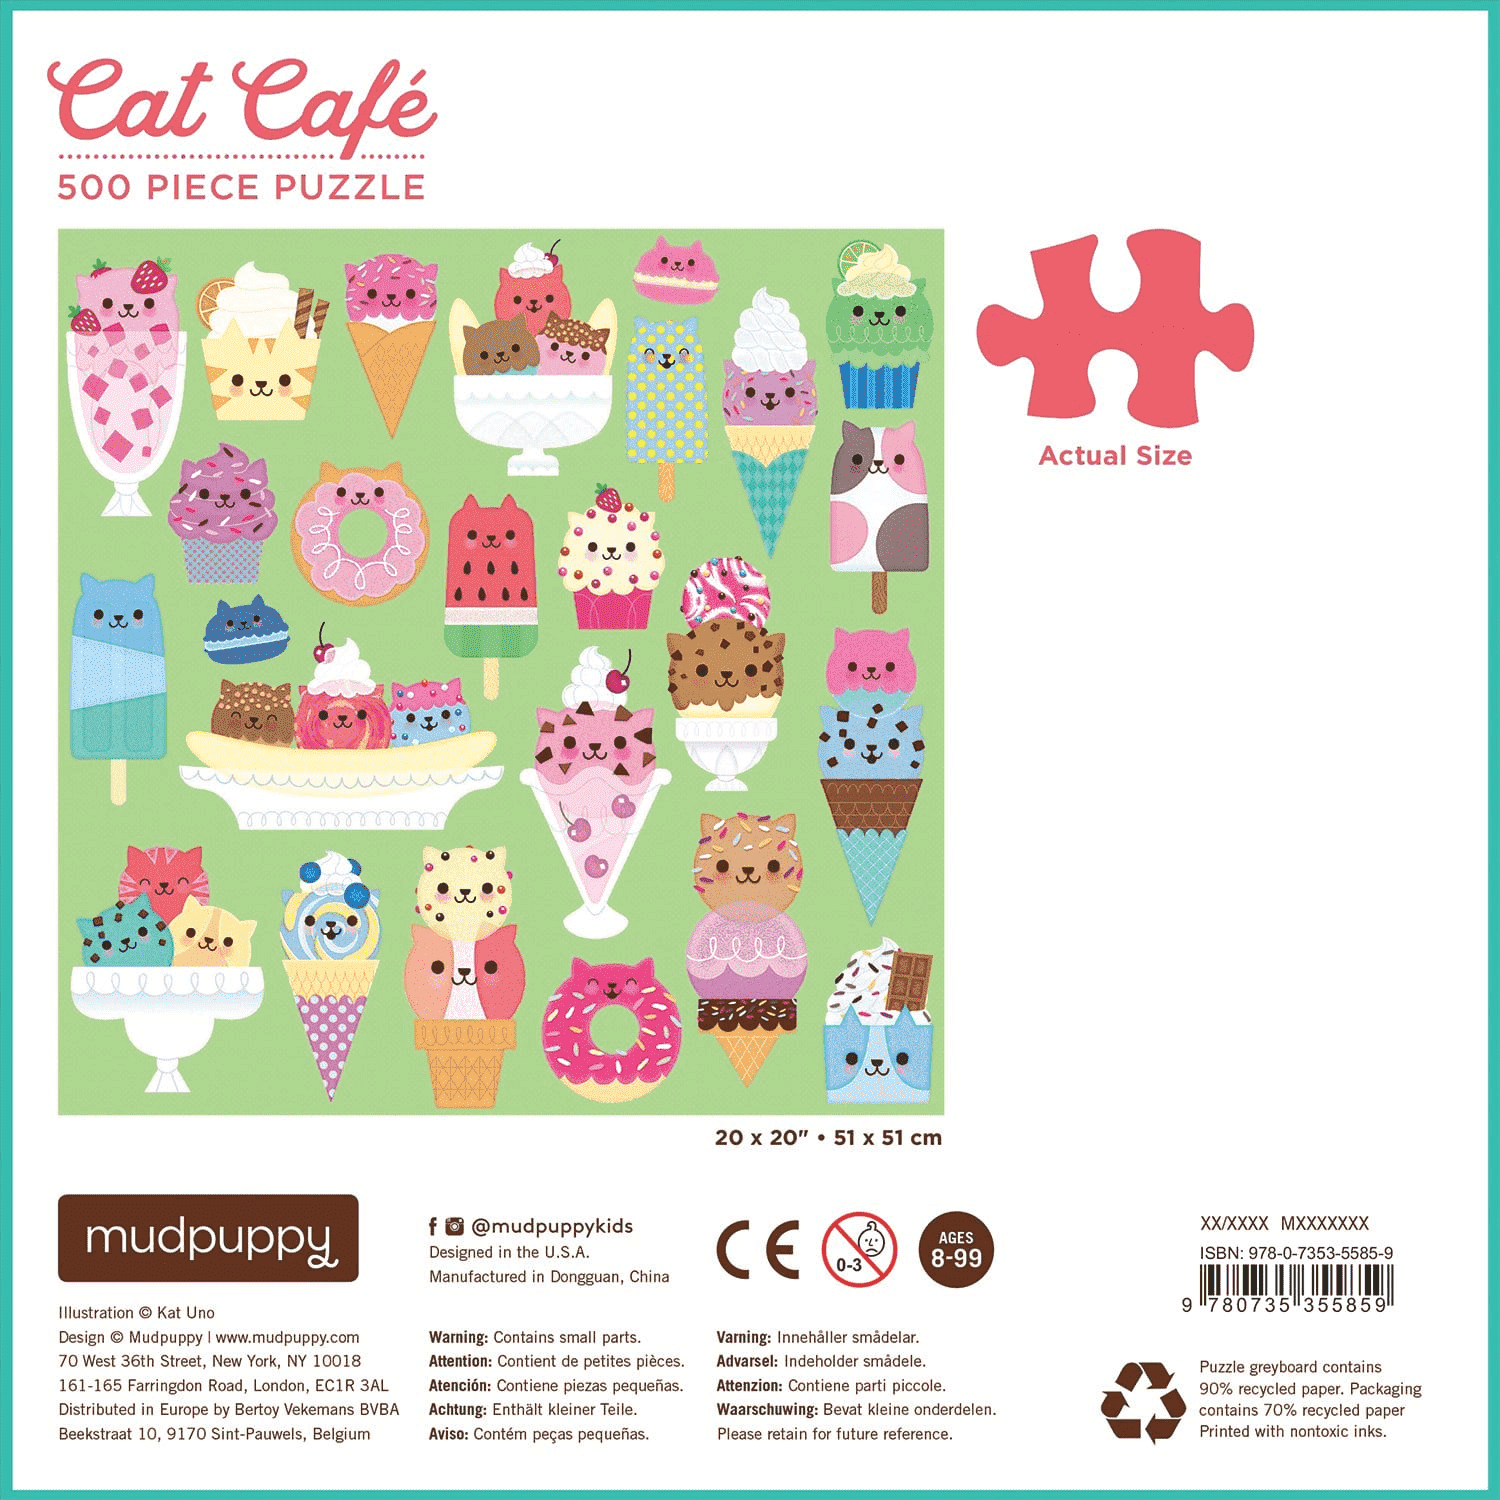 Cat Cafe 500 Piece Puzzle Family Puzzles Mudpuppy